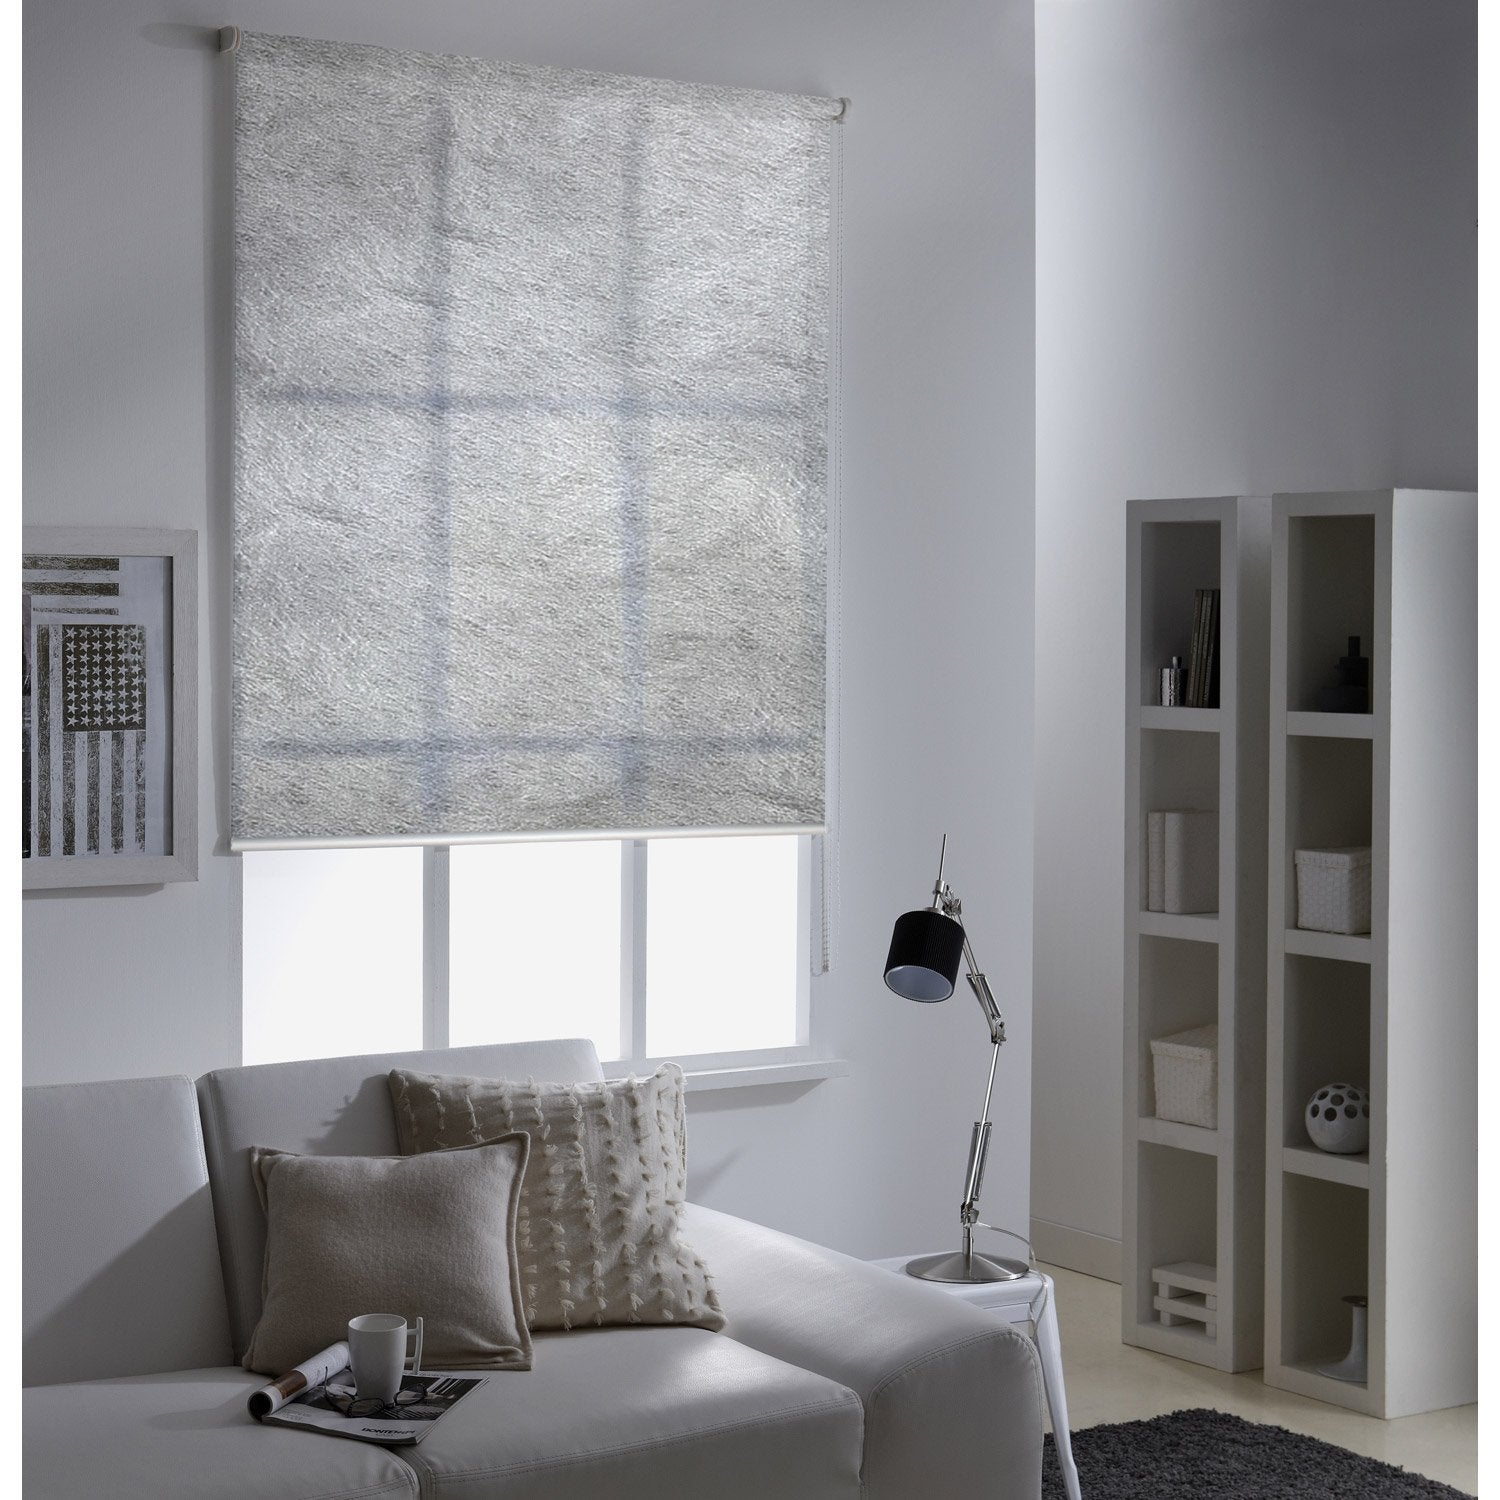 store enrouleur tamisant frost gris argent 125x190 cm leroy merlin. Black Bedroom Furniture Sets. Home Design Ideas